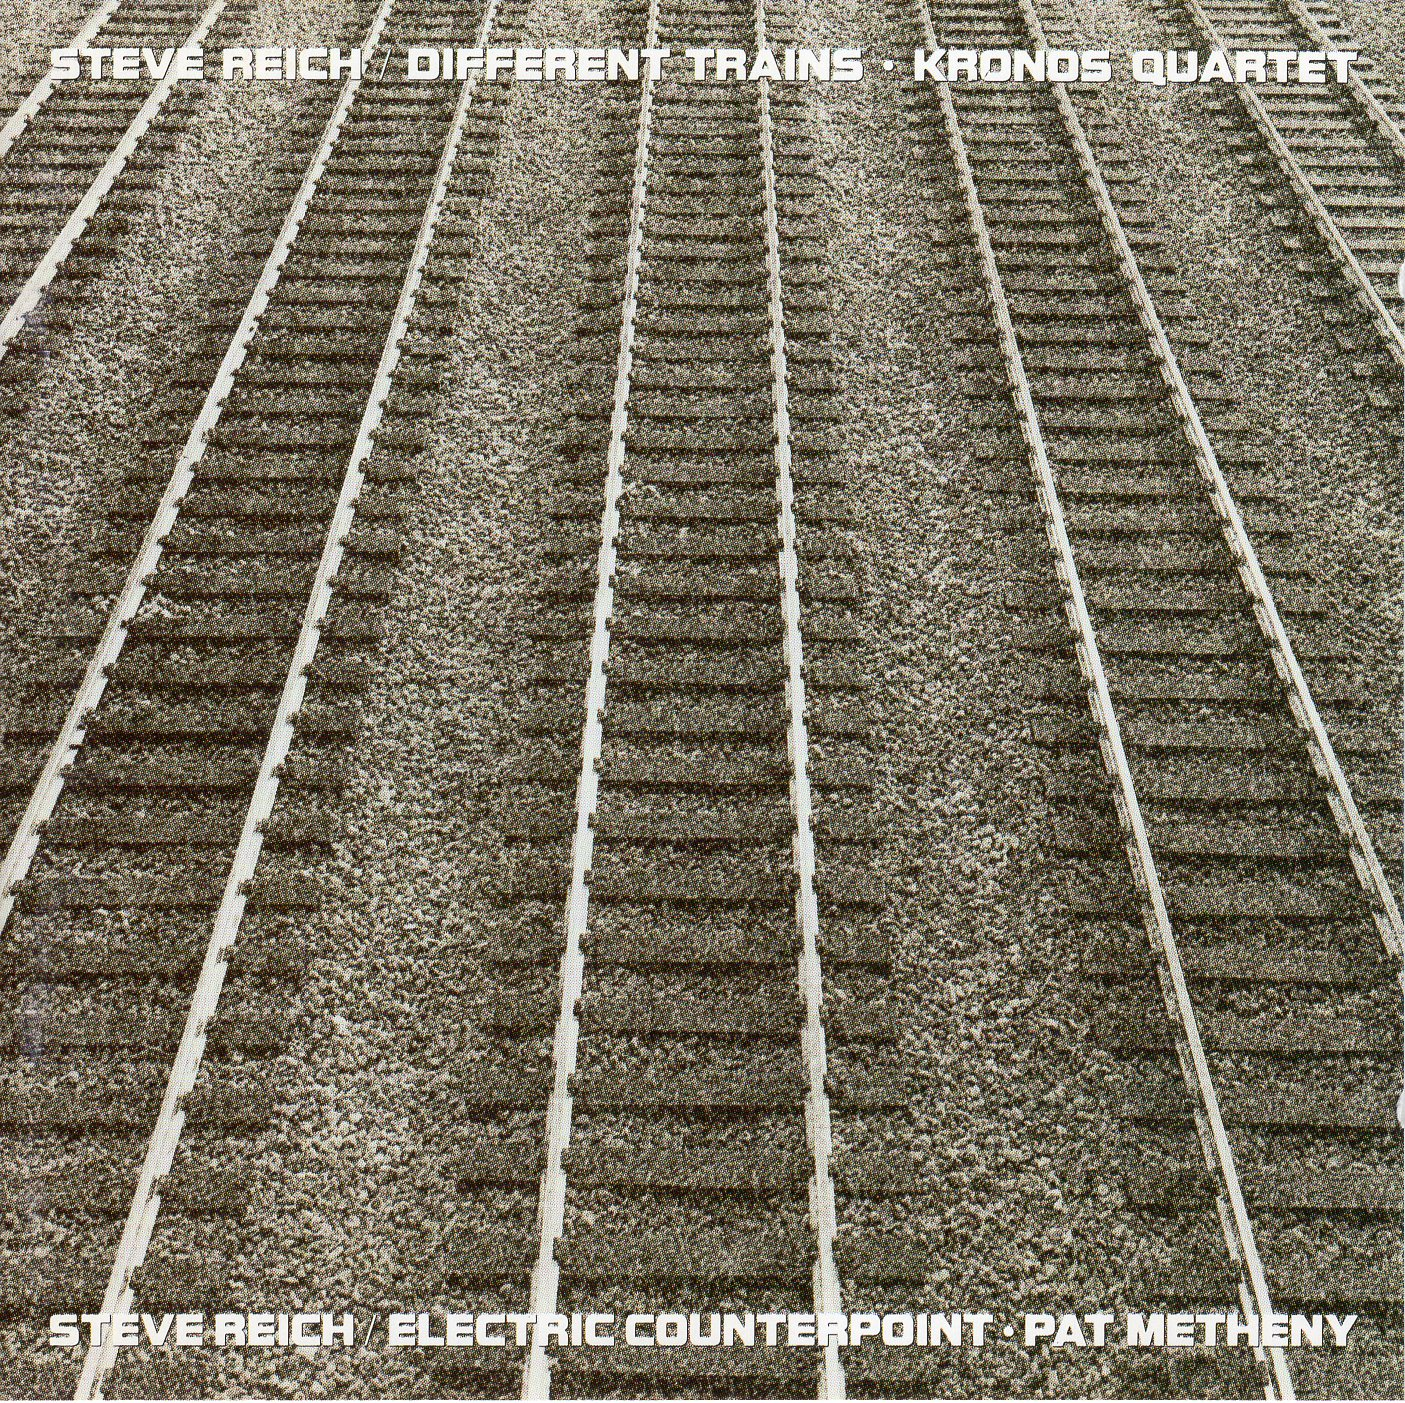 """Electric Counterpoint / Different Trains, Electric- Kronos Quartet, Pat Metheny, Steve Reich"" Kronos Quartet, Pat Metheny, Steve Reich"